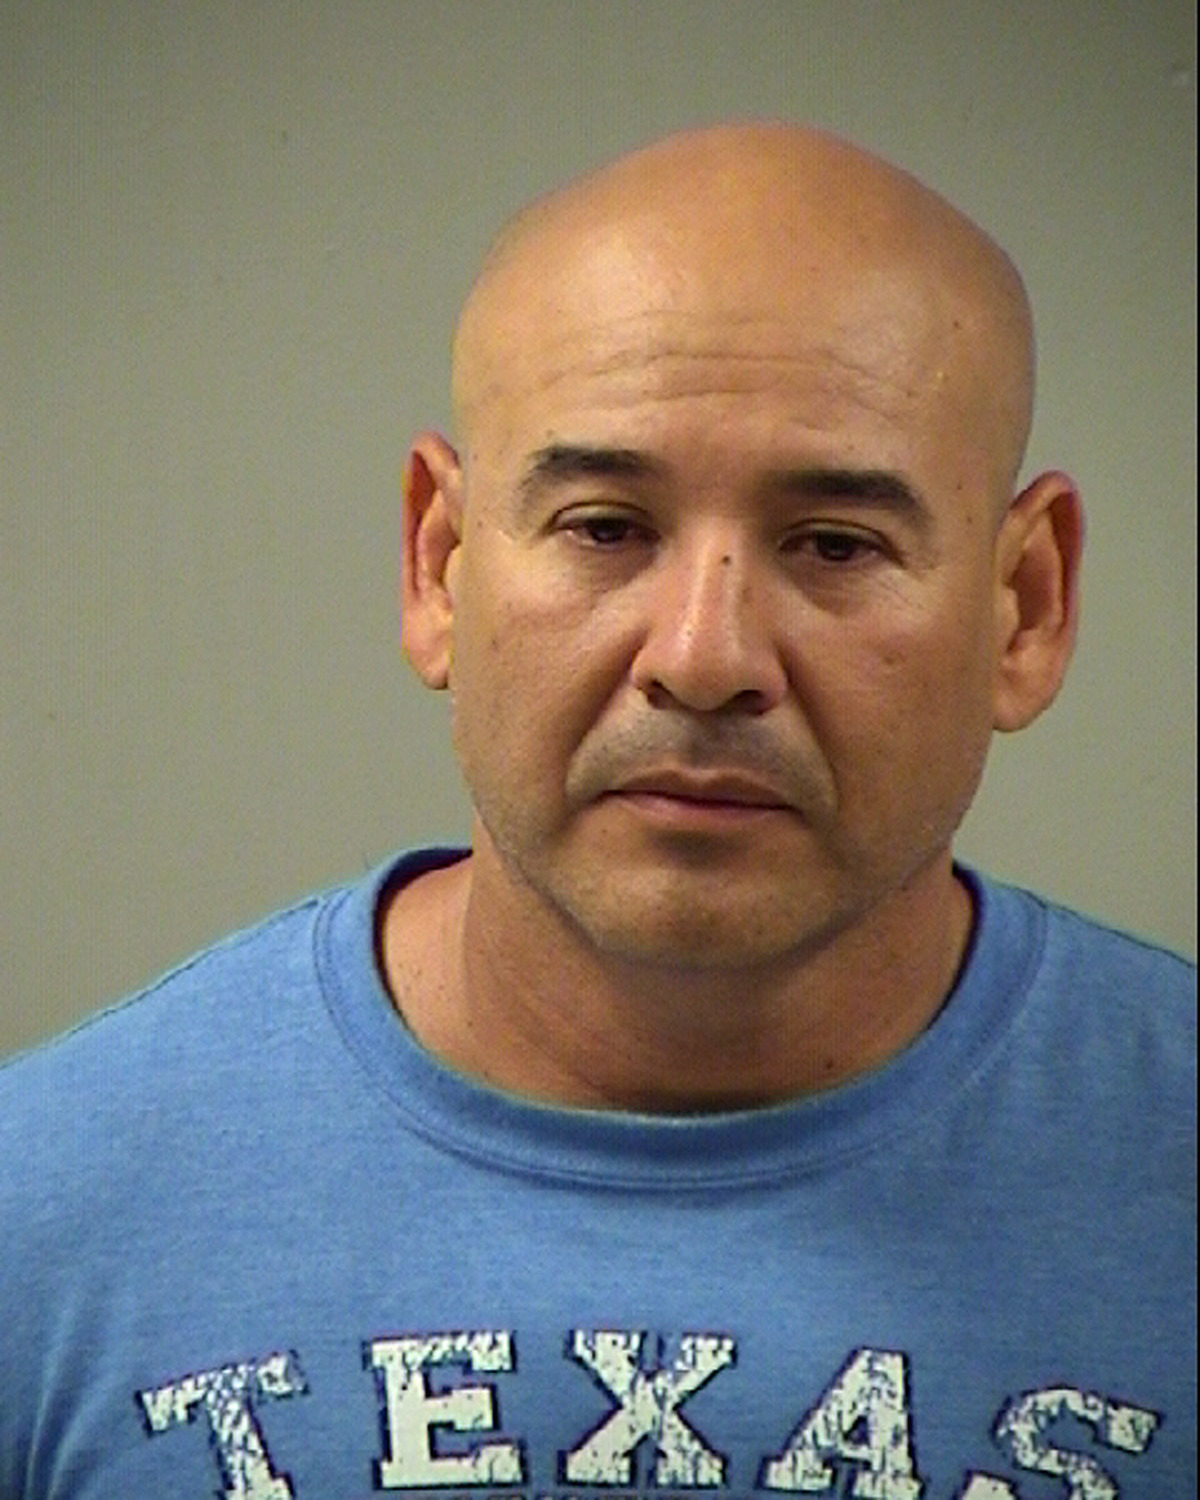 Abel Gomez, 43, was suspended indefinitely by the San Antonio Fire Department after a June 2017 DWI arrest.